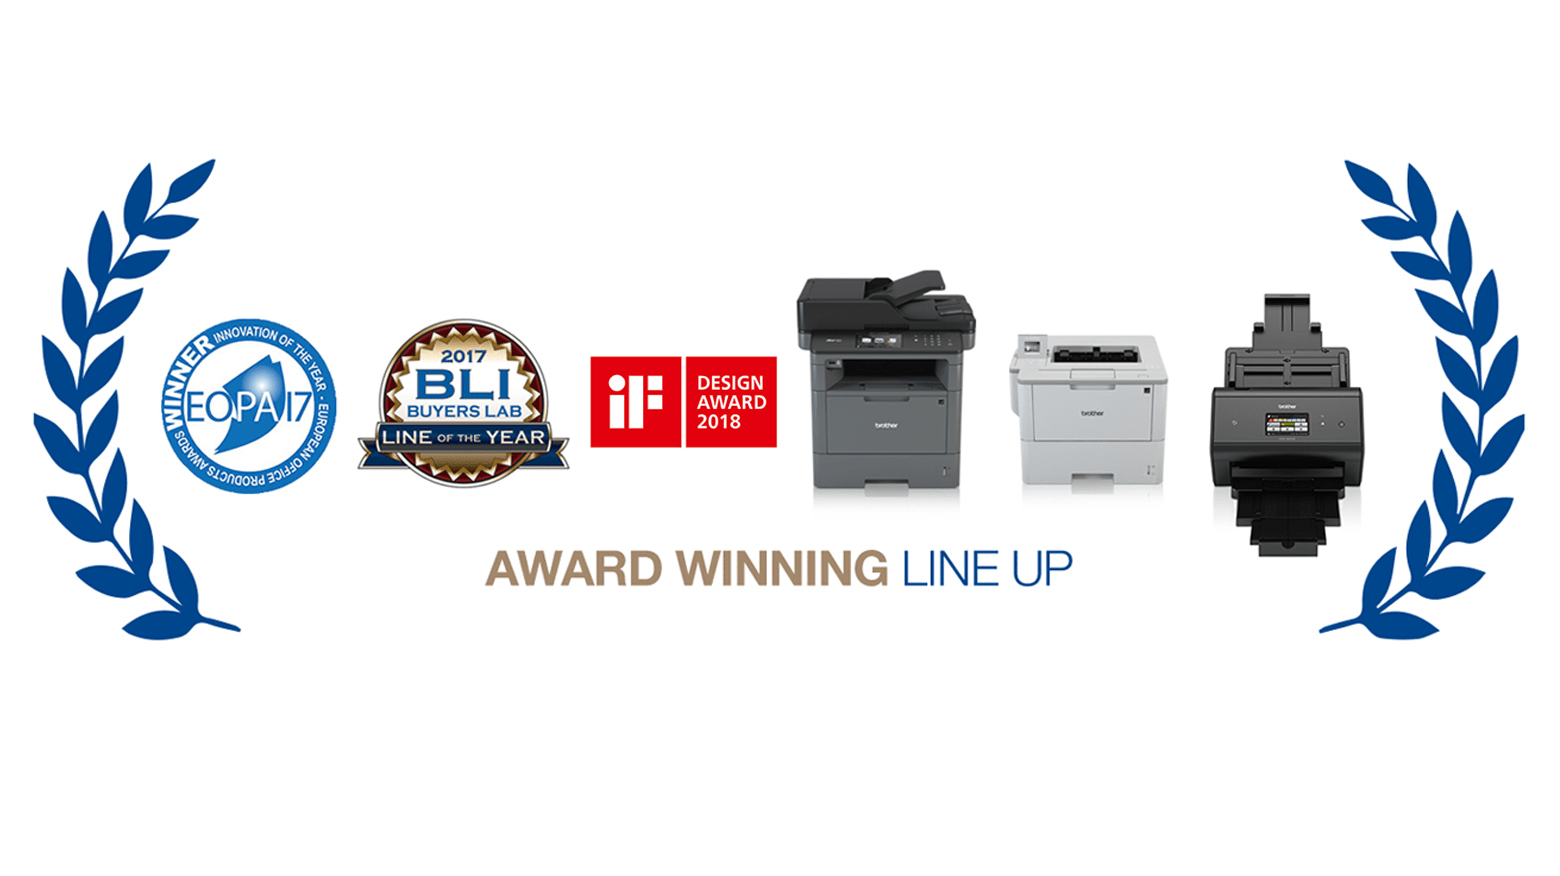 Brother's award winning printers and scanners 2017